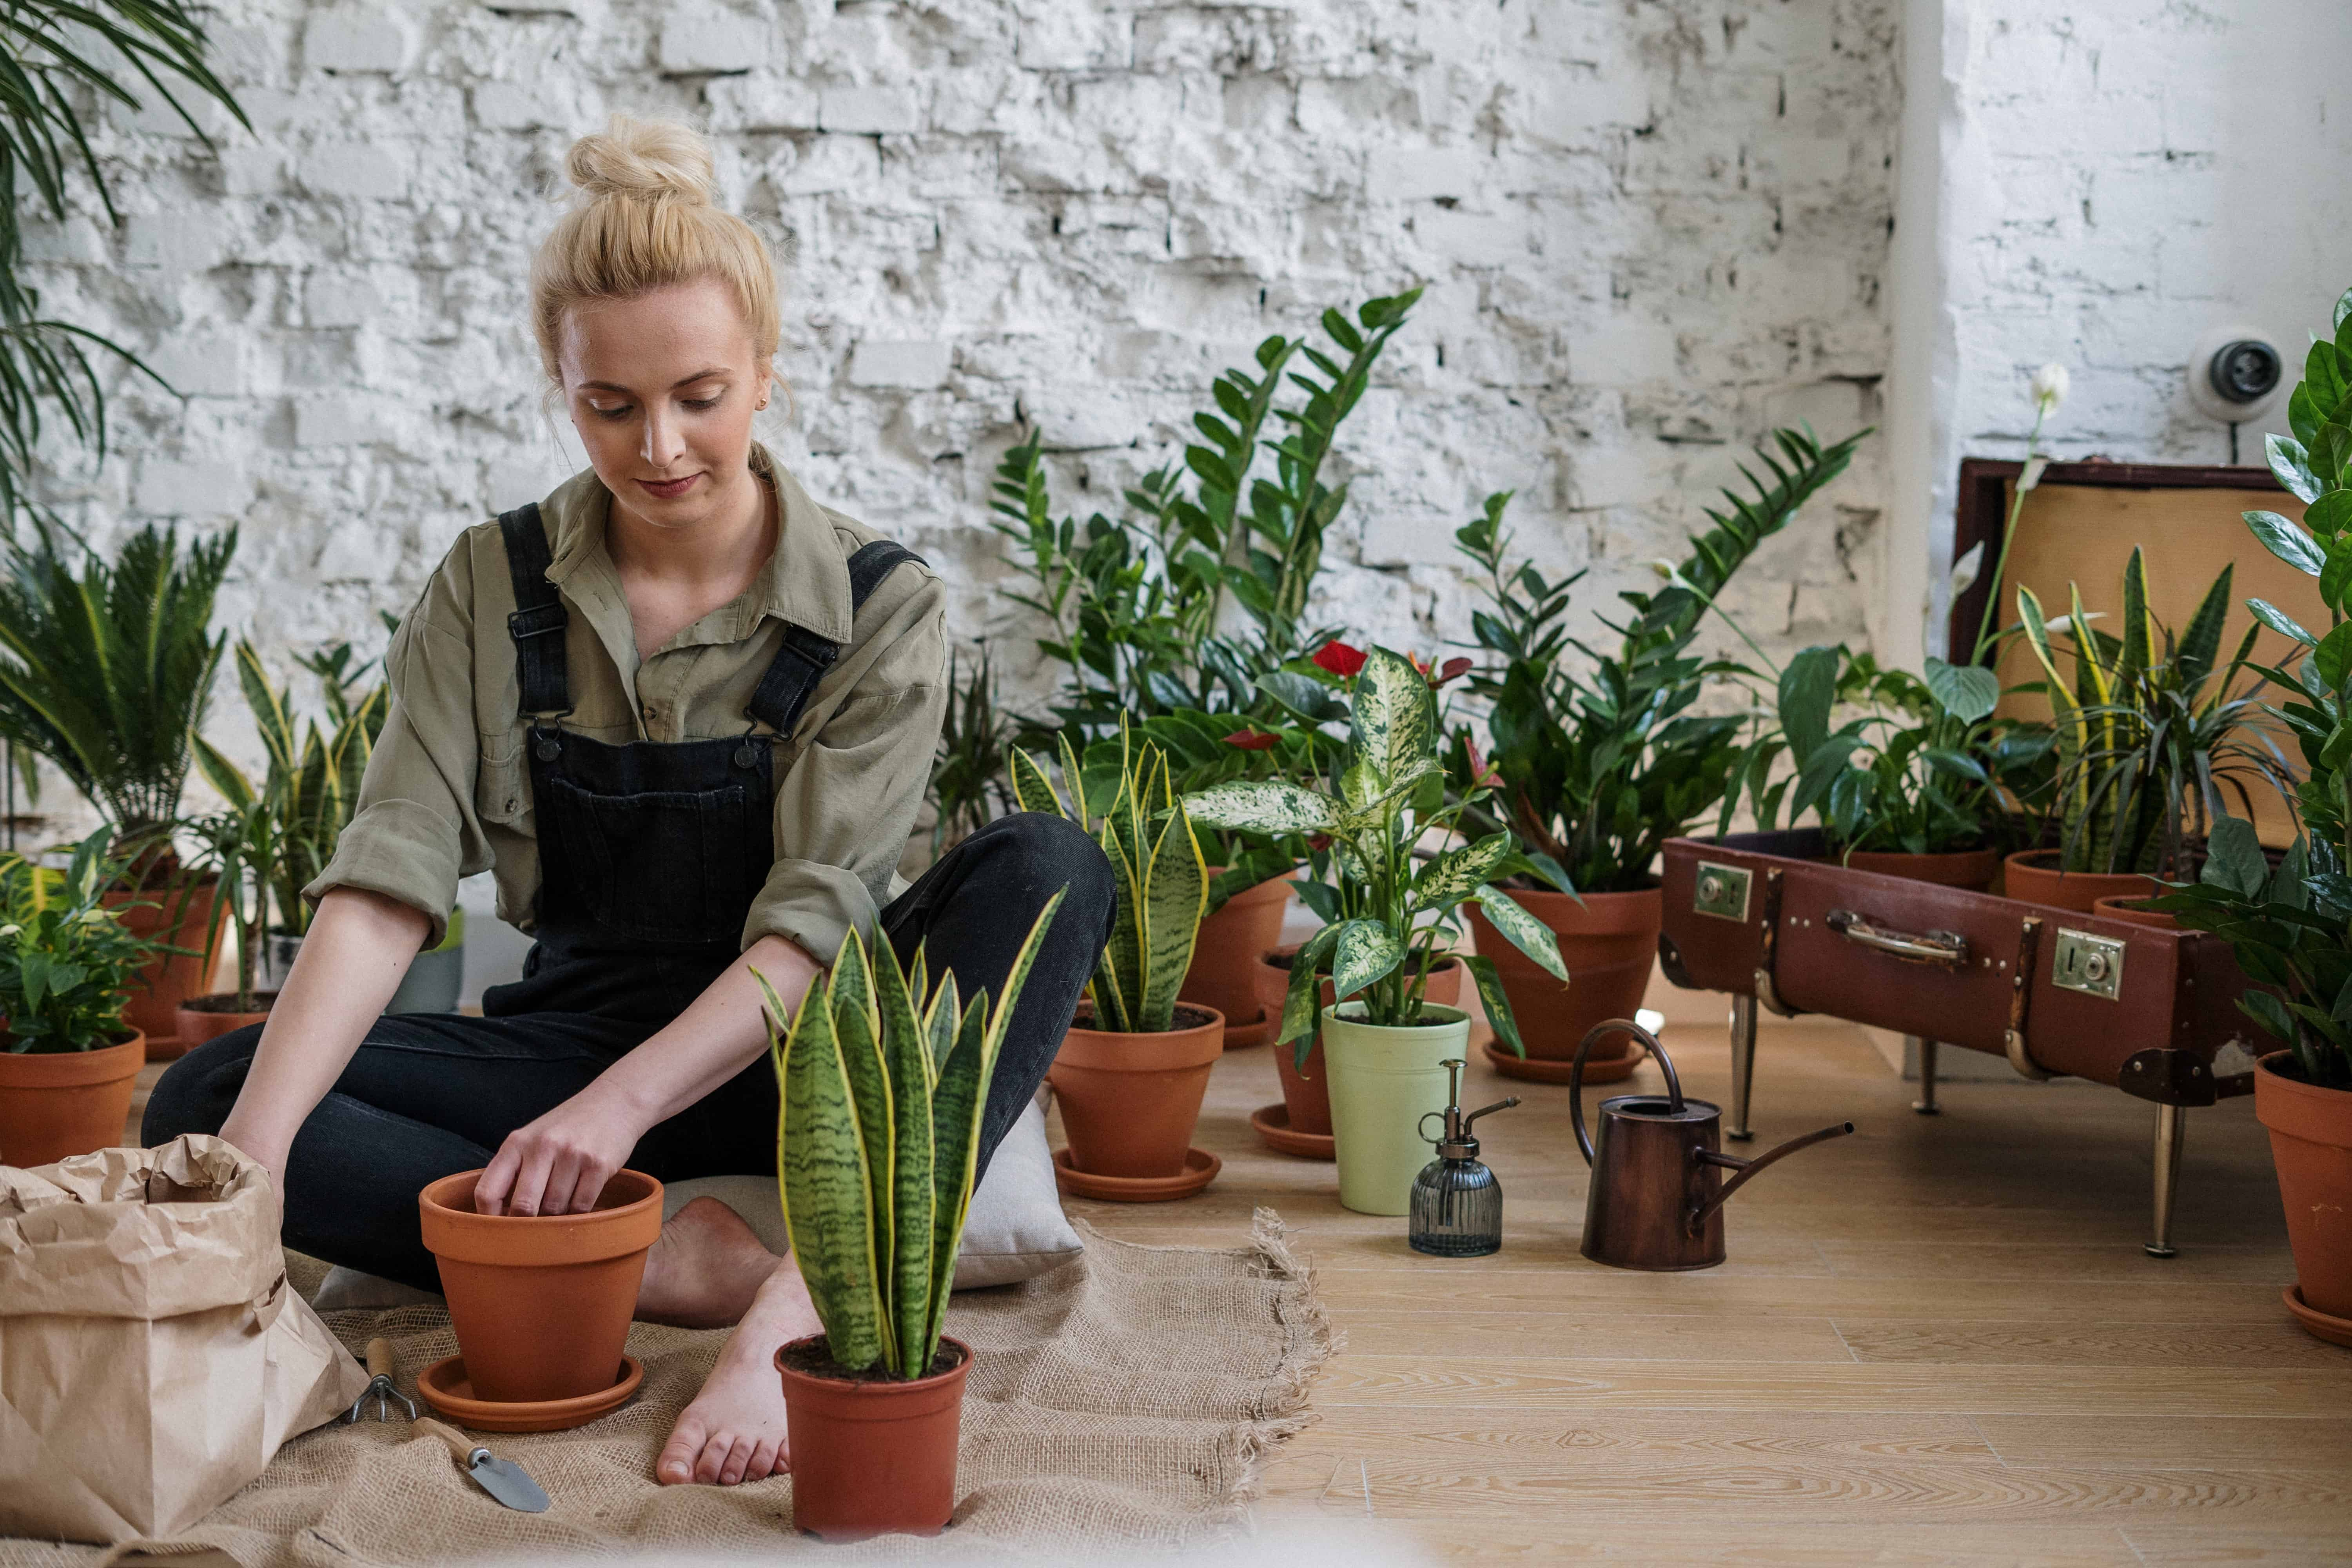 What Is Dirt Therapy? How it works and who it helps